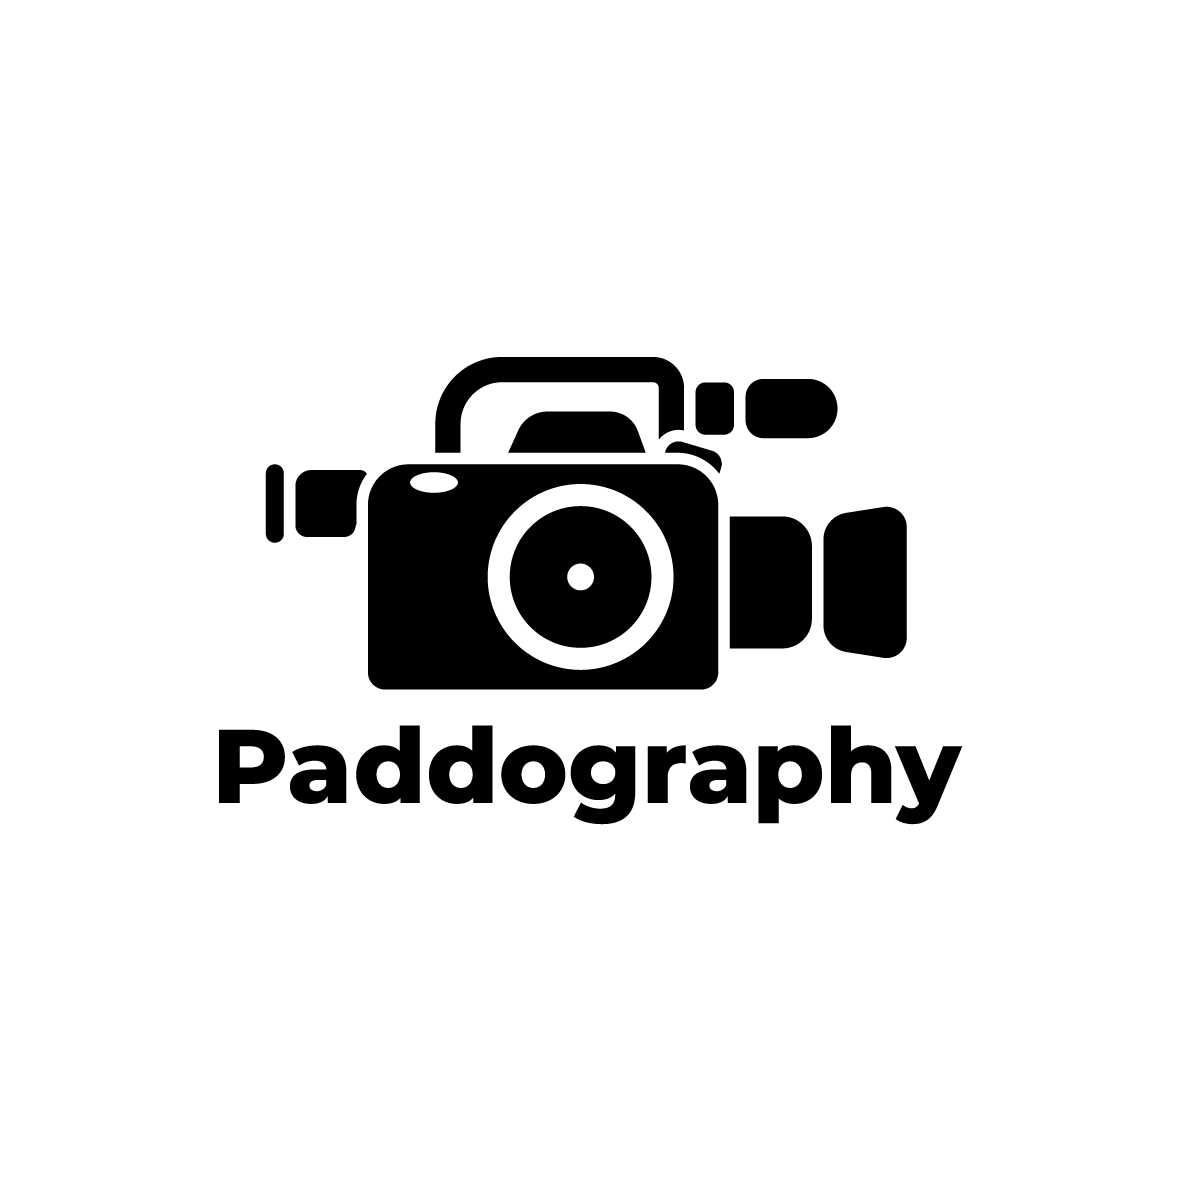 Logo design for Gold Coast photographer Paddography. Paddo's a photographer and filmer, so the idea was to blend the two into a simple icon. - The VX1000, a popular video camera among skateboarders was also used as inspiration - evoking Paddo's roots.